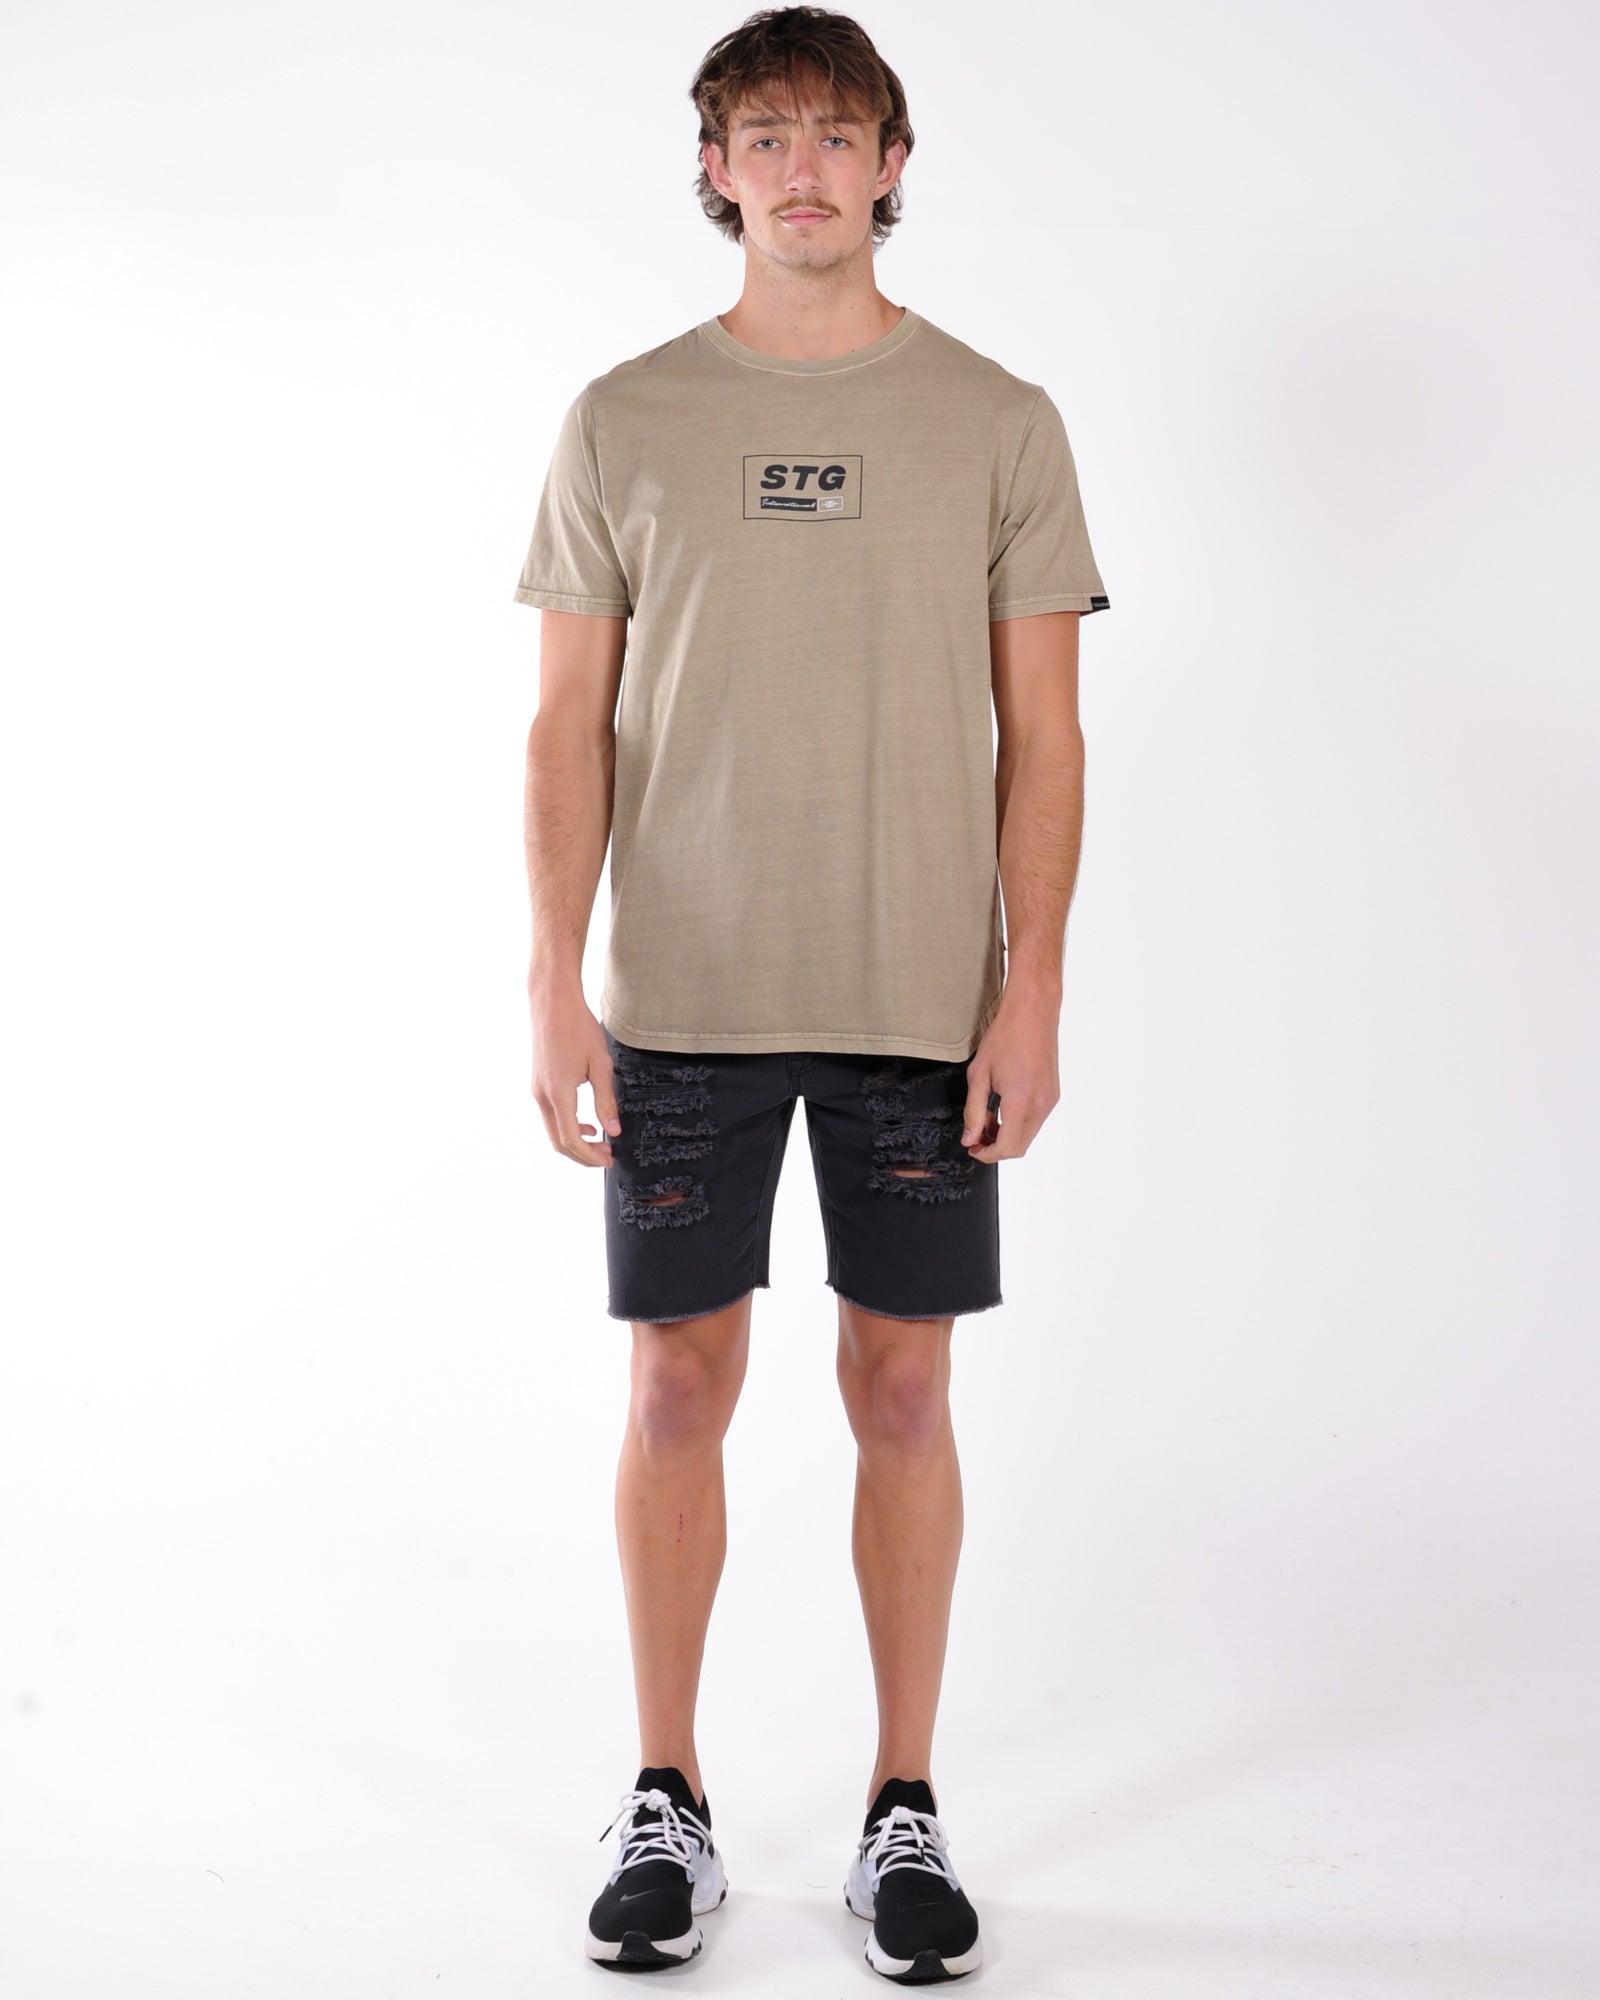 St Goliath City Guide Tee - Sand